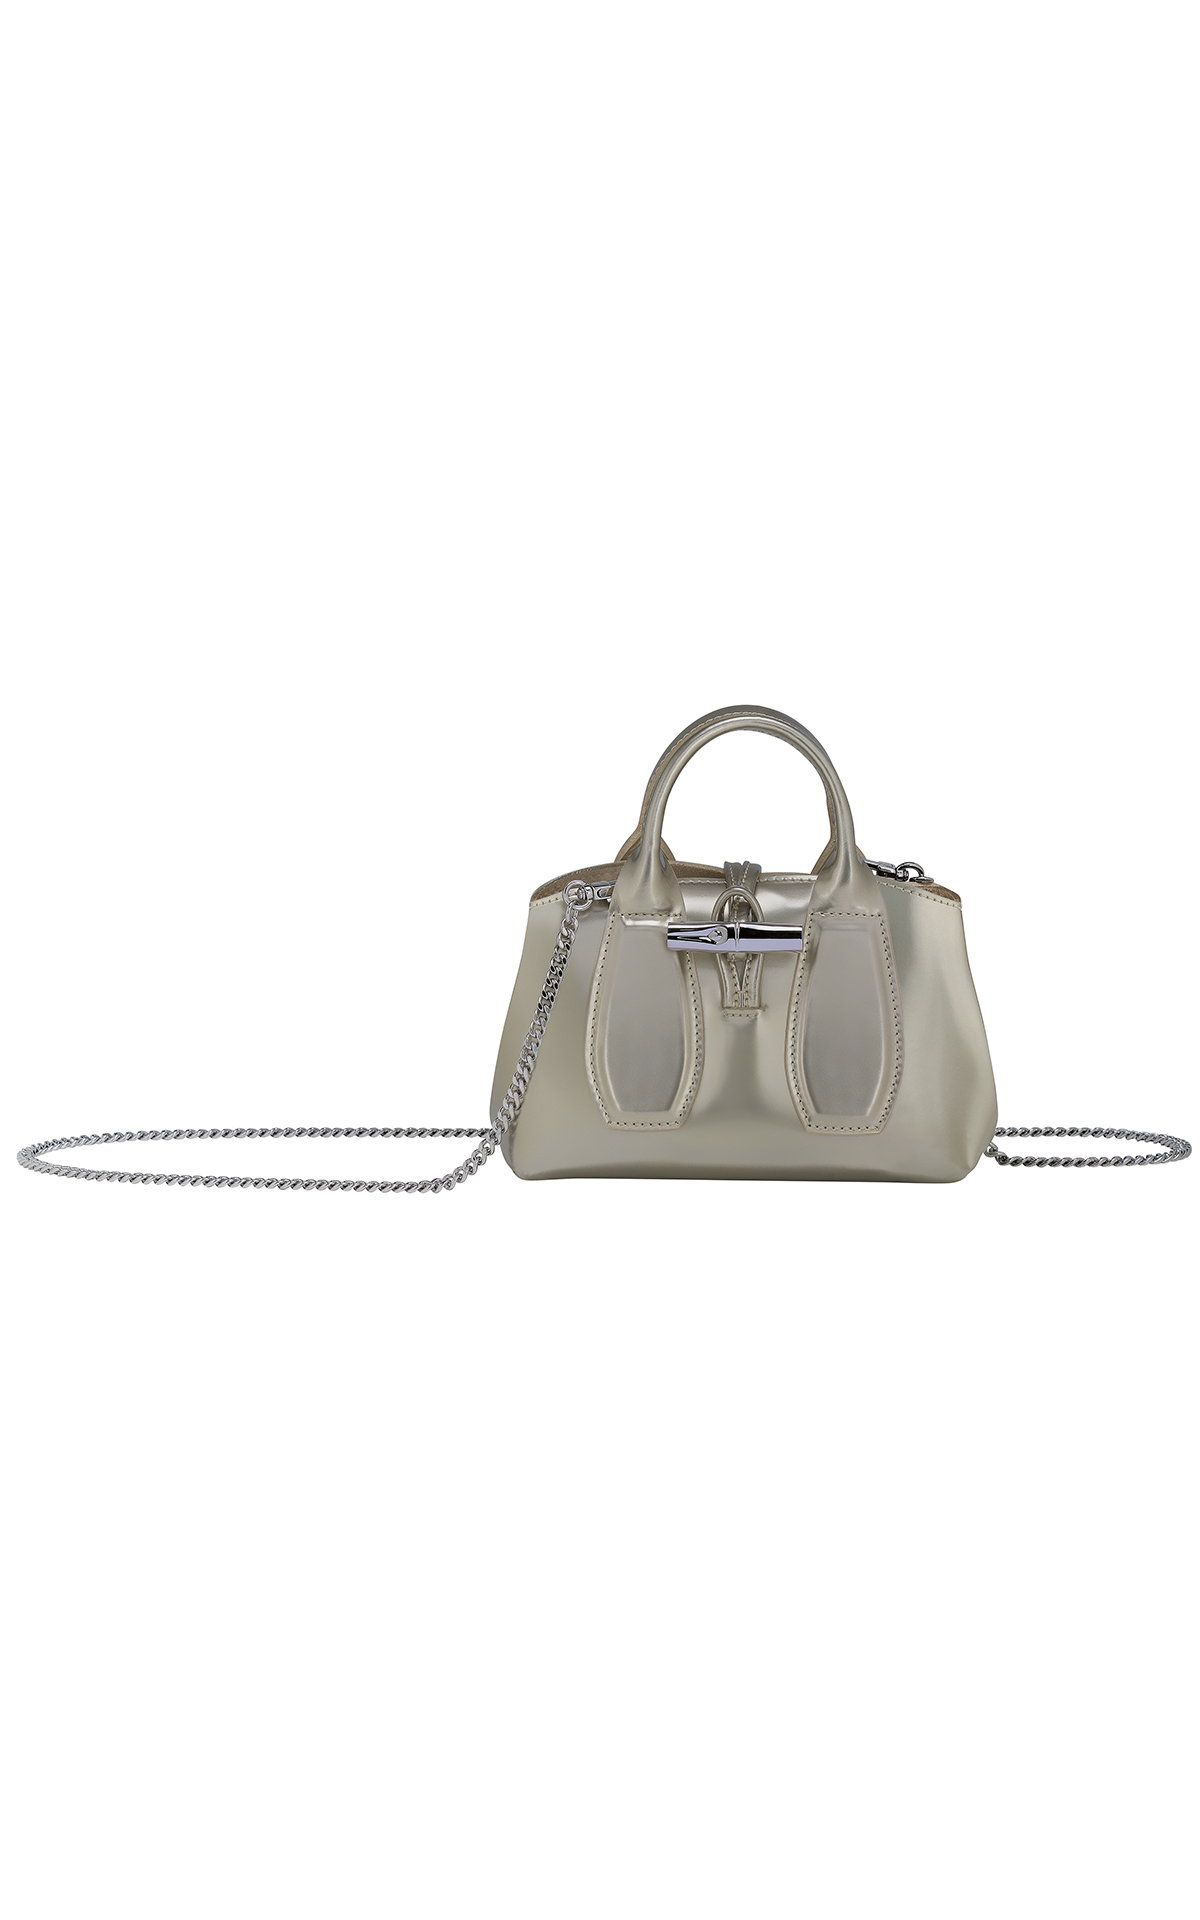 La Vallée Village Longchamp grey handbag